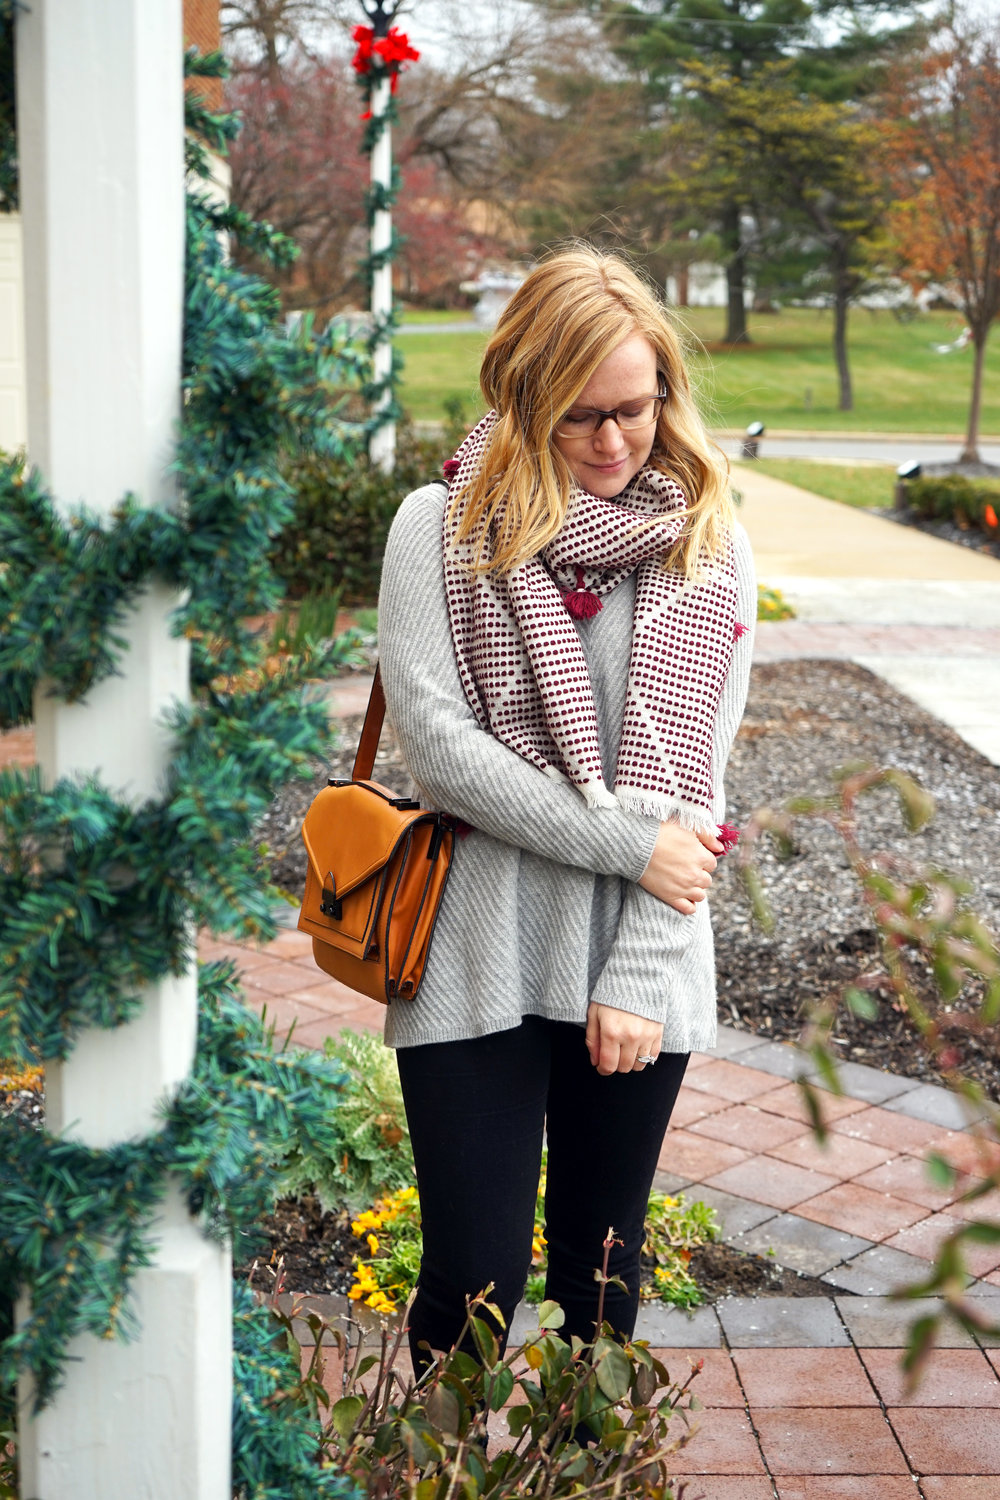 Maggie a la Mode - Madewell Diamond-Dash Tassel Scarf, Nordstrom Collection Chevron Cashmere Sweater, AG High-Waisted Skinny Jeans, Loeffler Randall Rider Bag